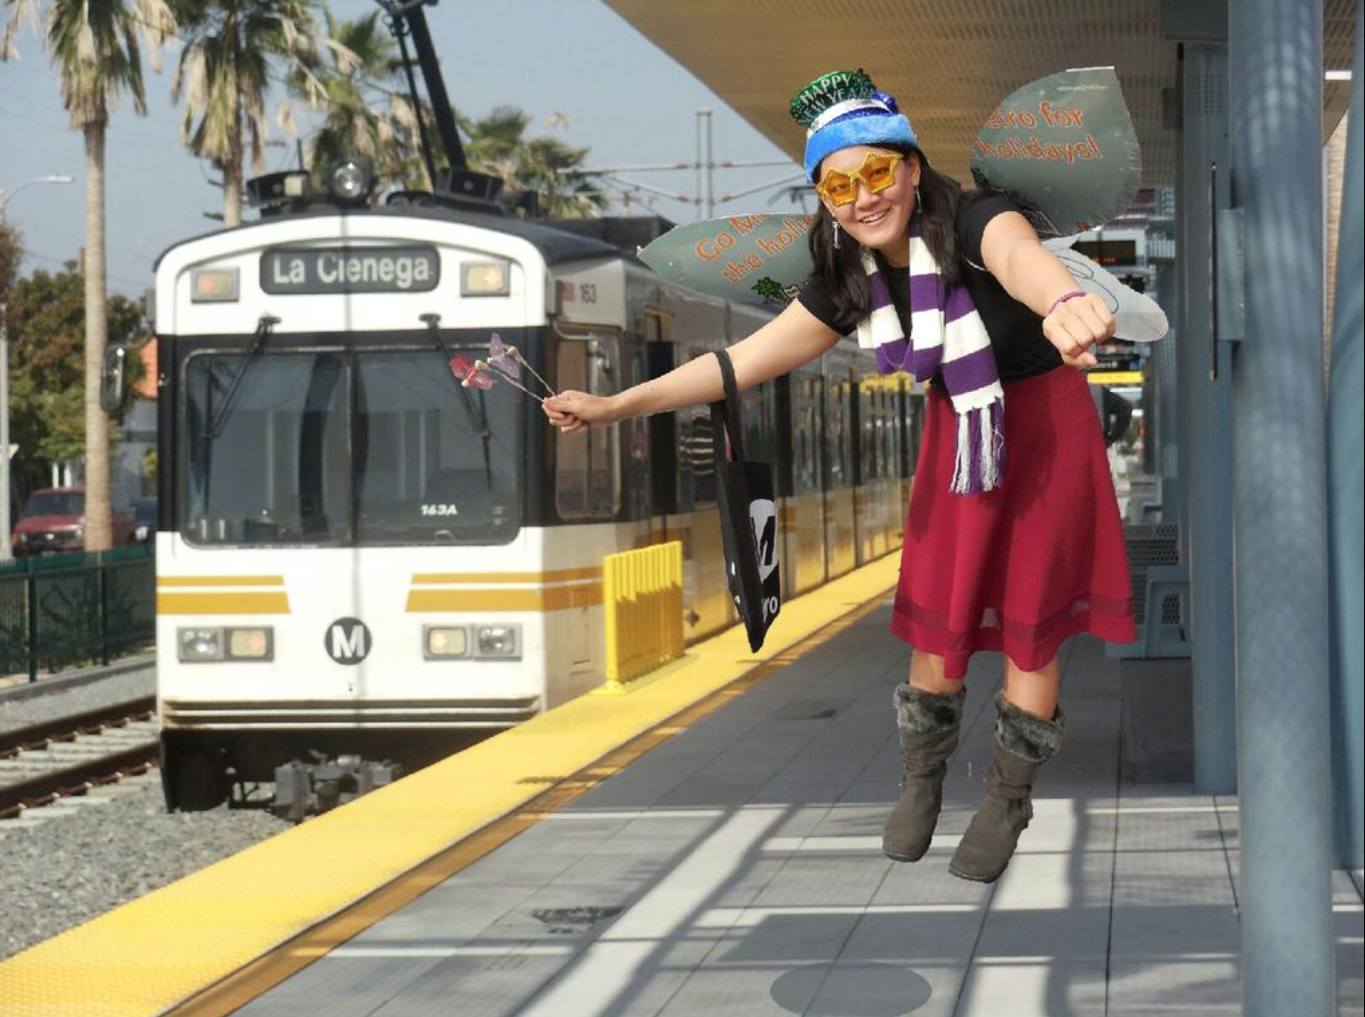 The Metro Holiday Fairy is ready to take the train to new year's parties! Image by Mark Arroyo/Metro